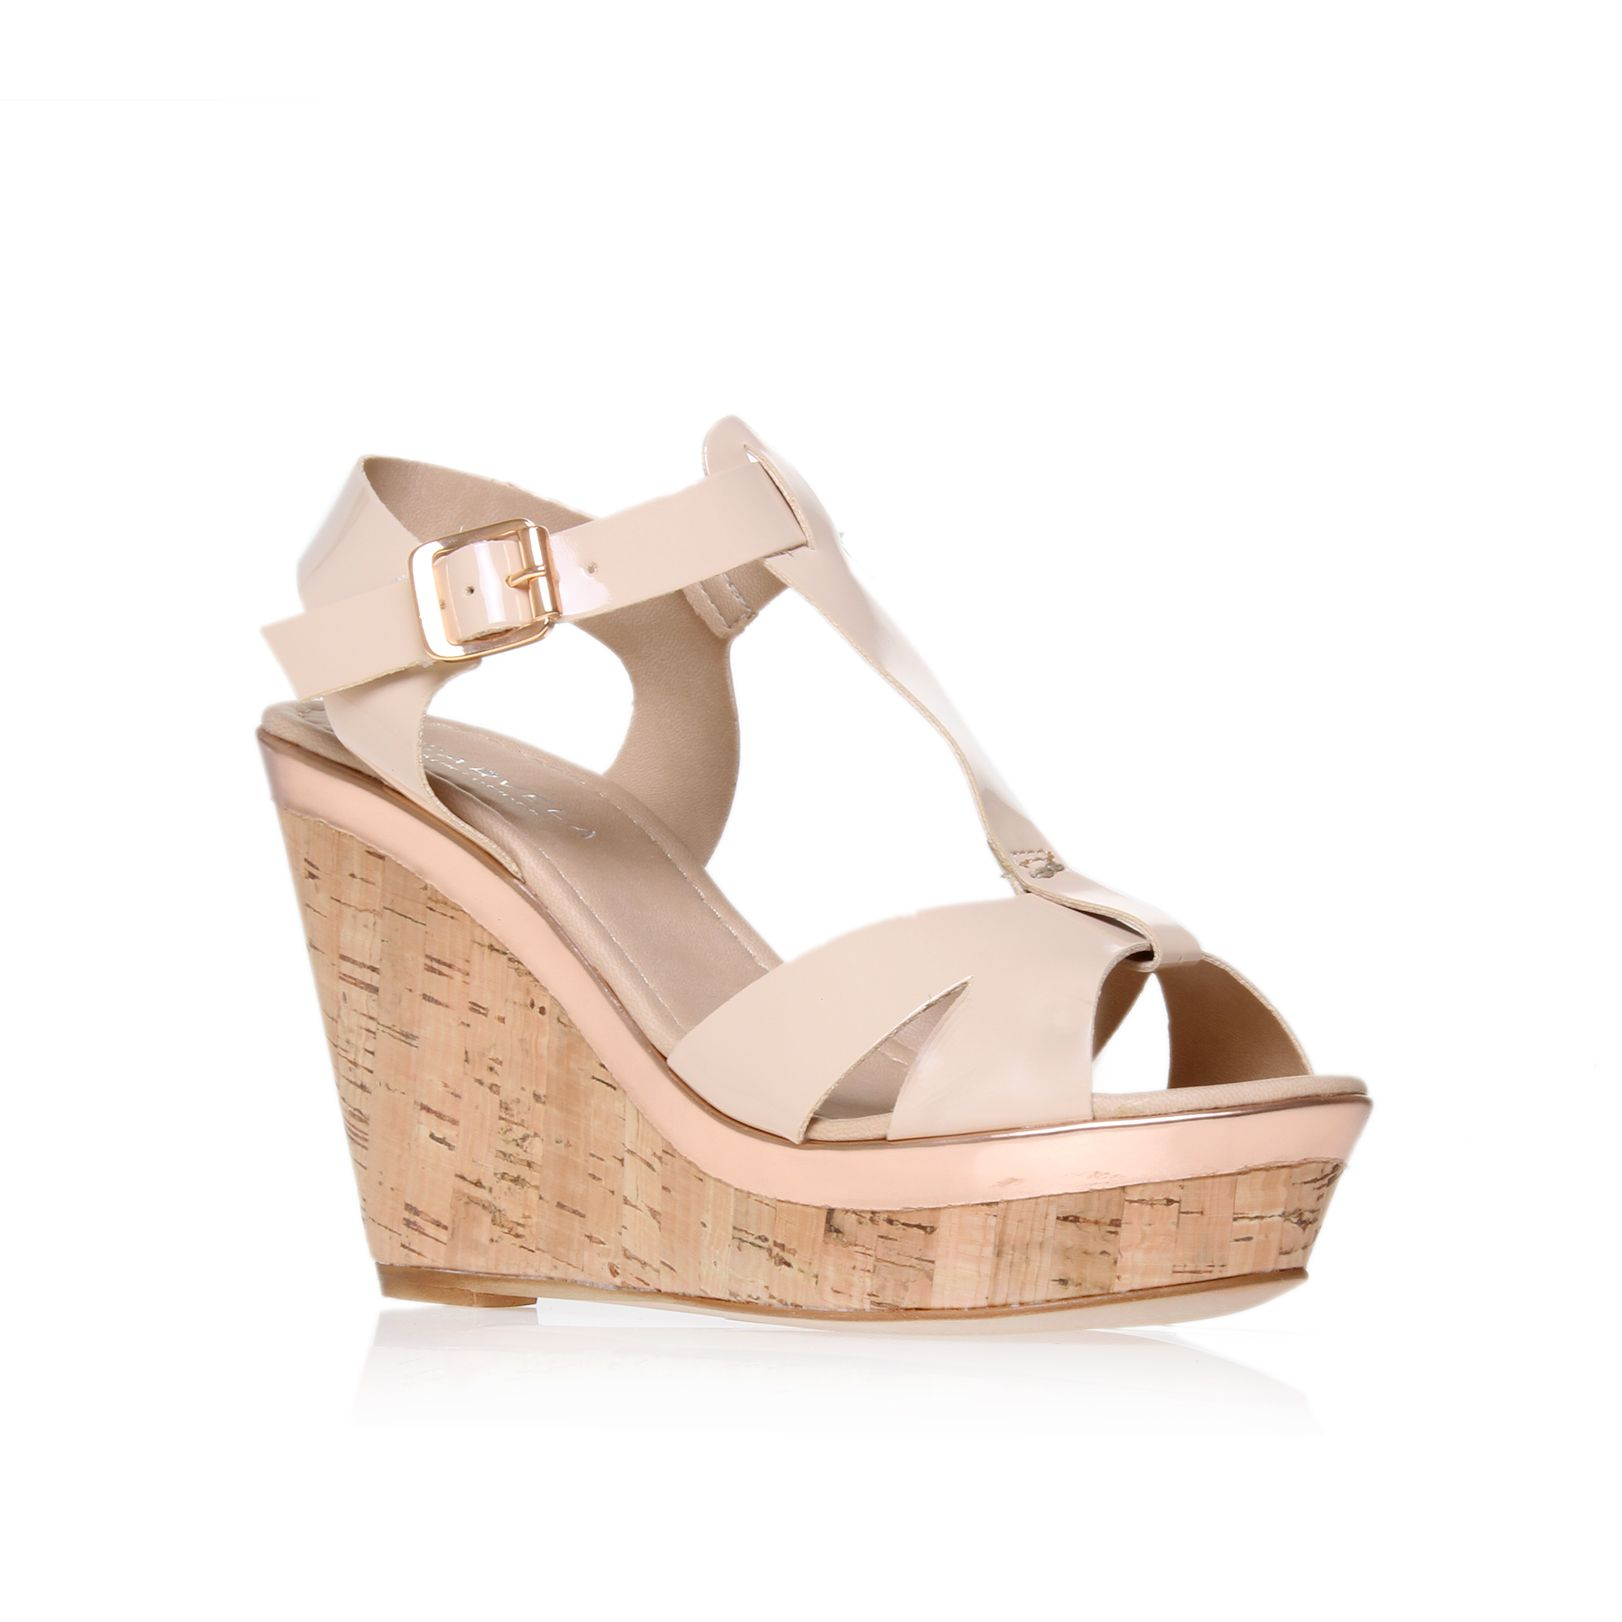 Kab wedge court shoes